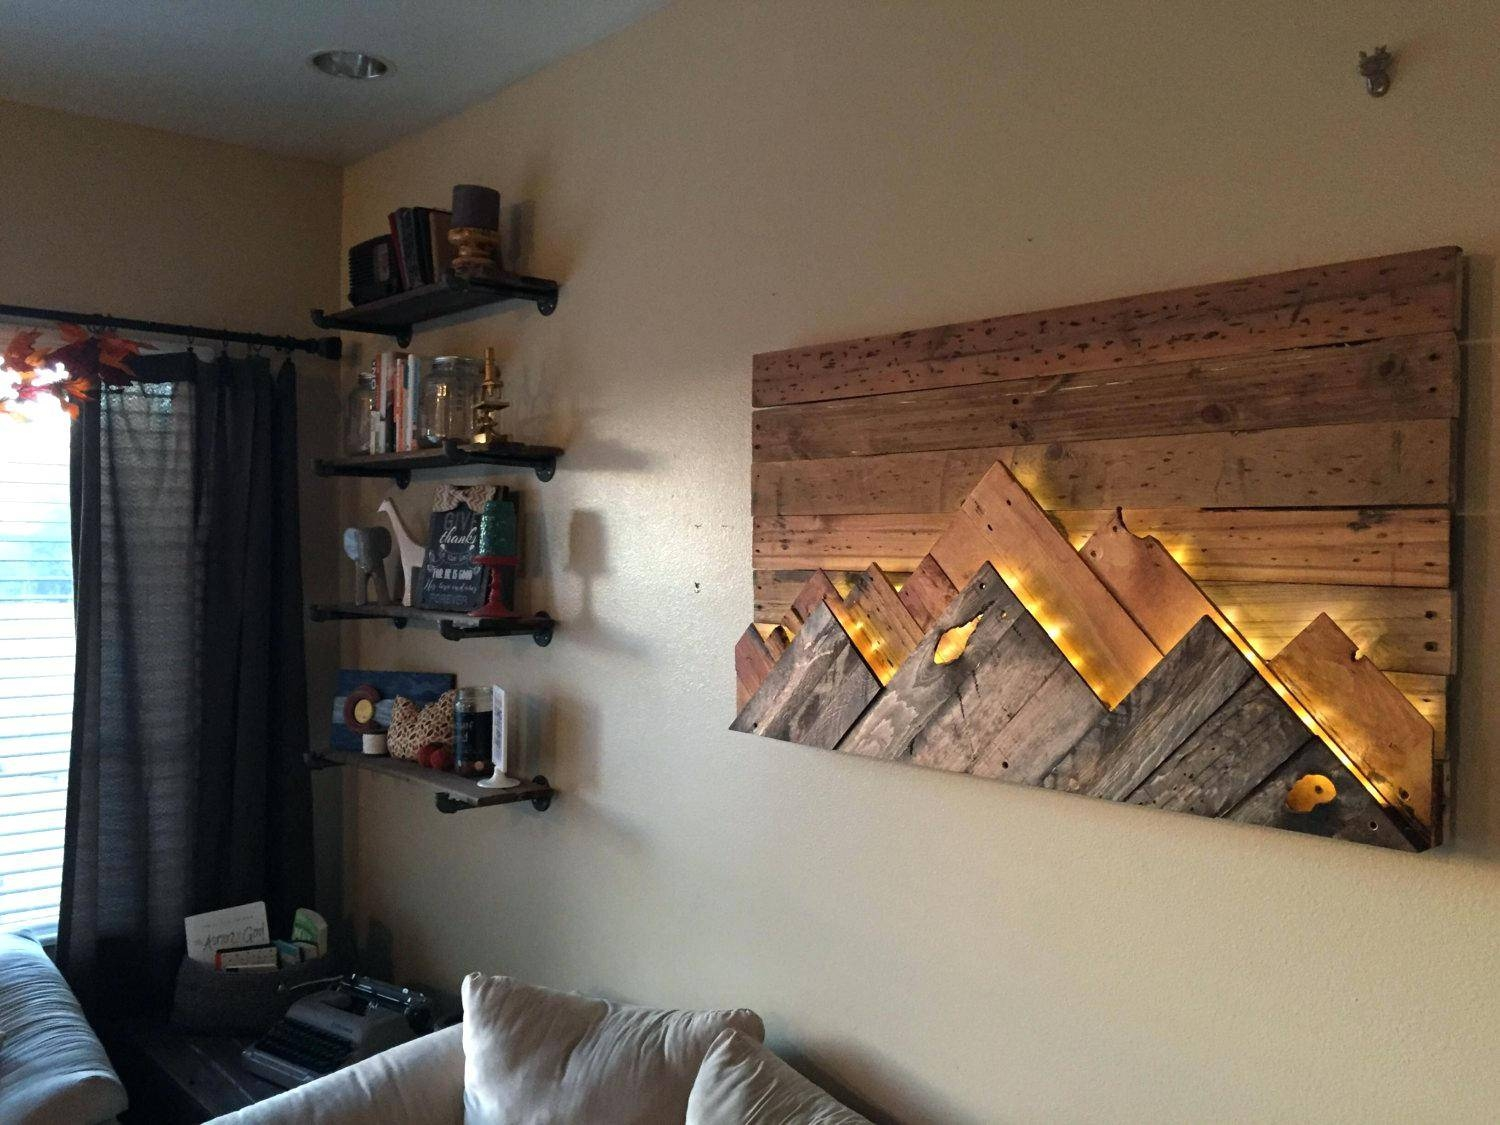 Wall Ideas : Wooden Mountain Range Wall Art Mountain Themed Metal Within Most Current Mountain Scene Metal Wall Art (View 15 of 30)